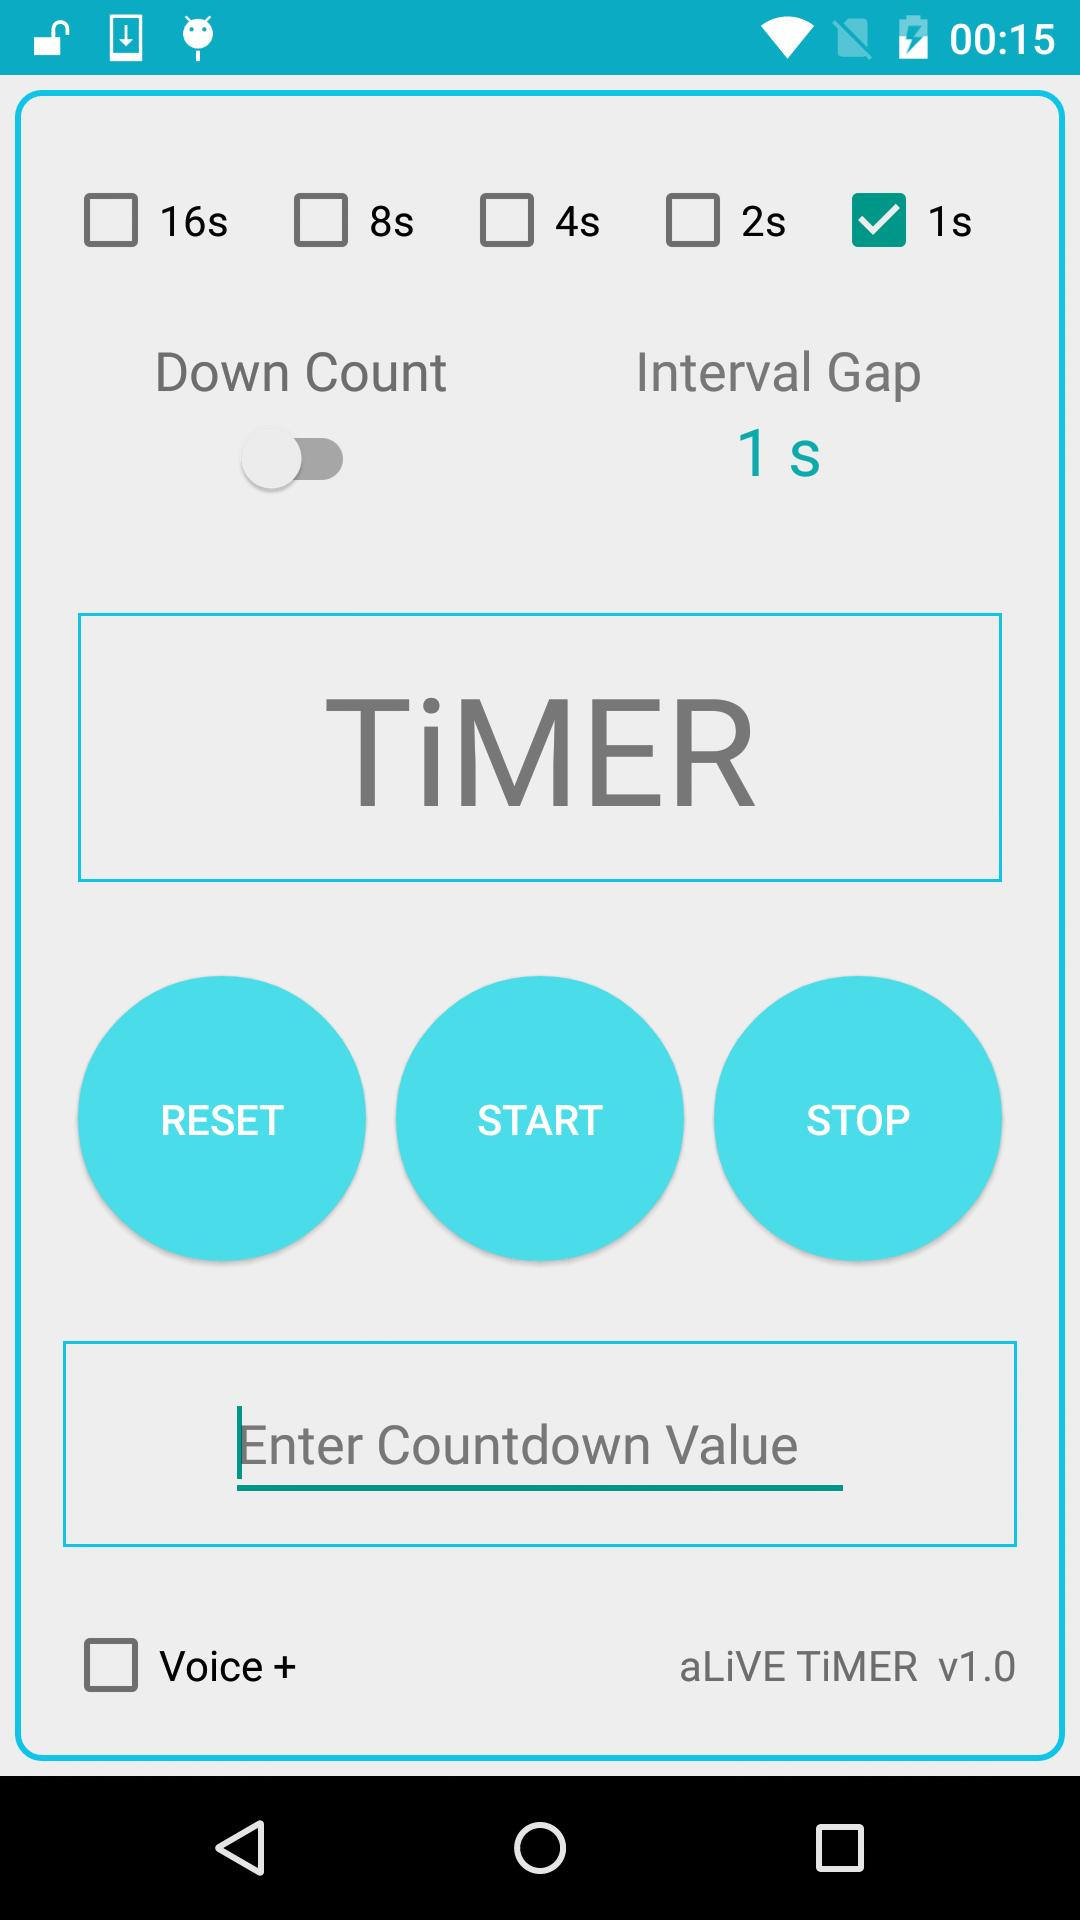 Voice Assisted Countdown Timer (Yoga/Gym) for Android - APK